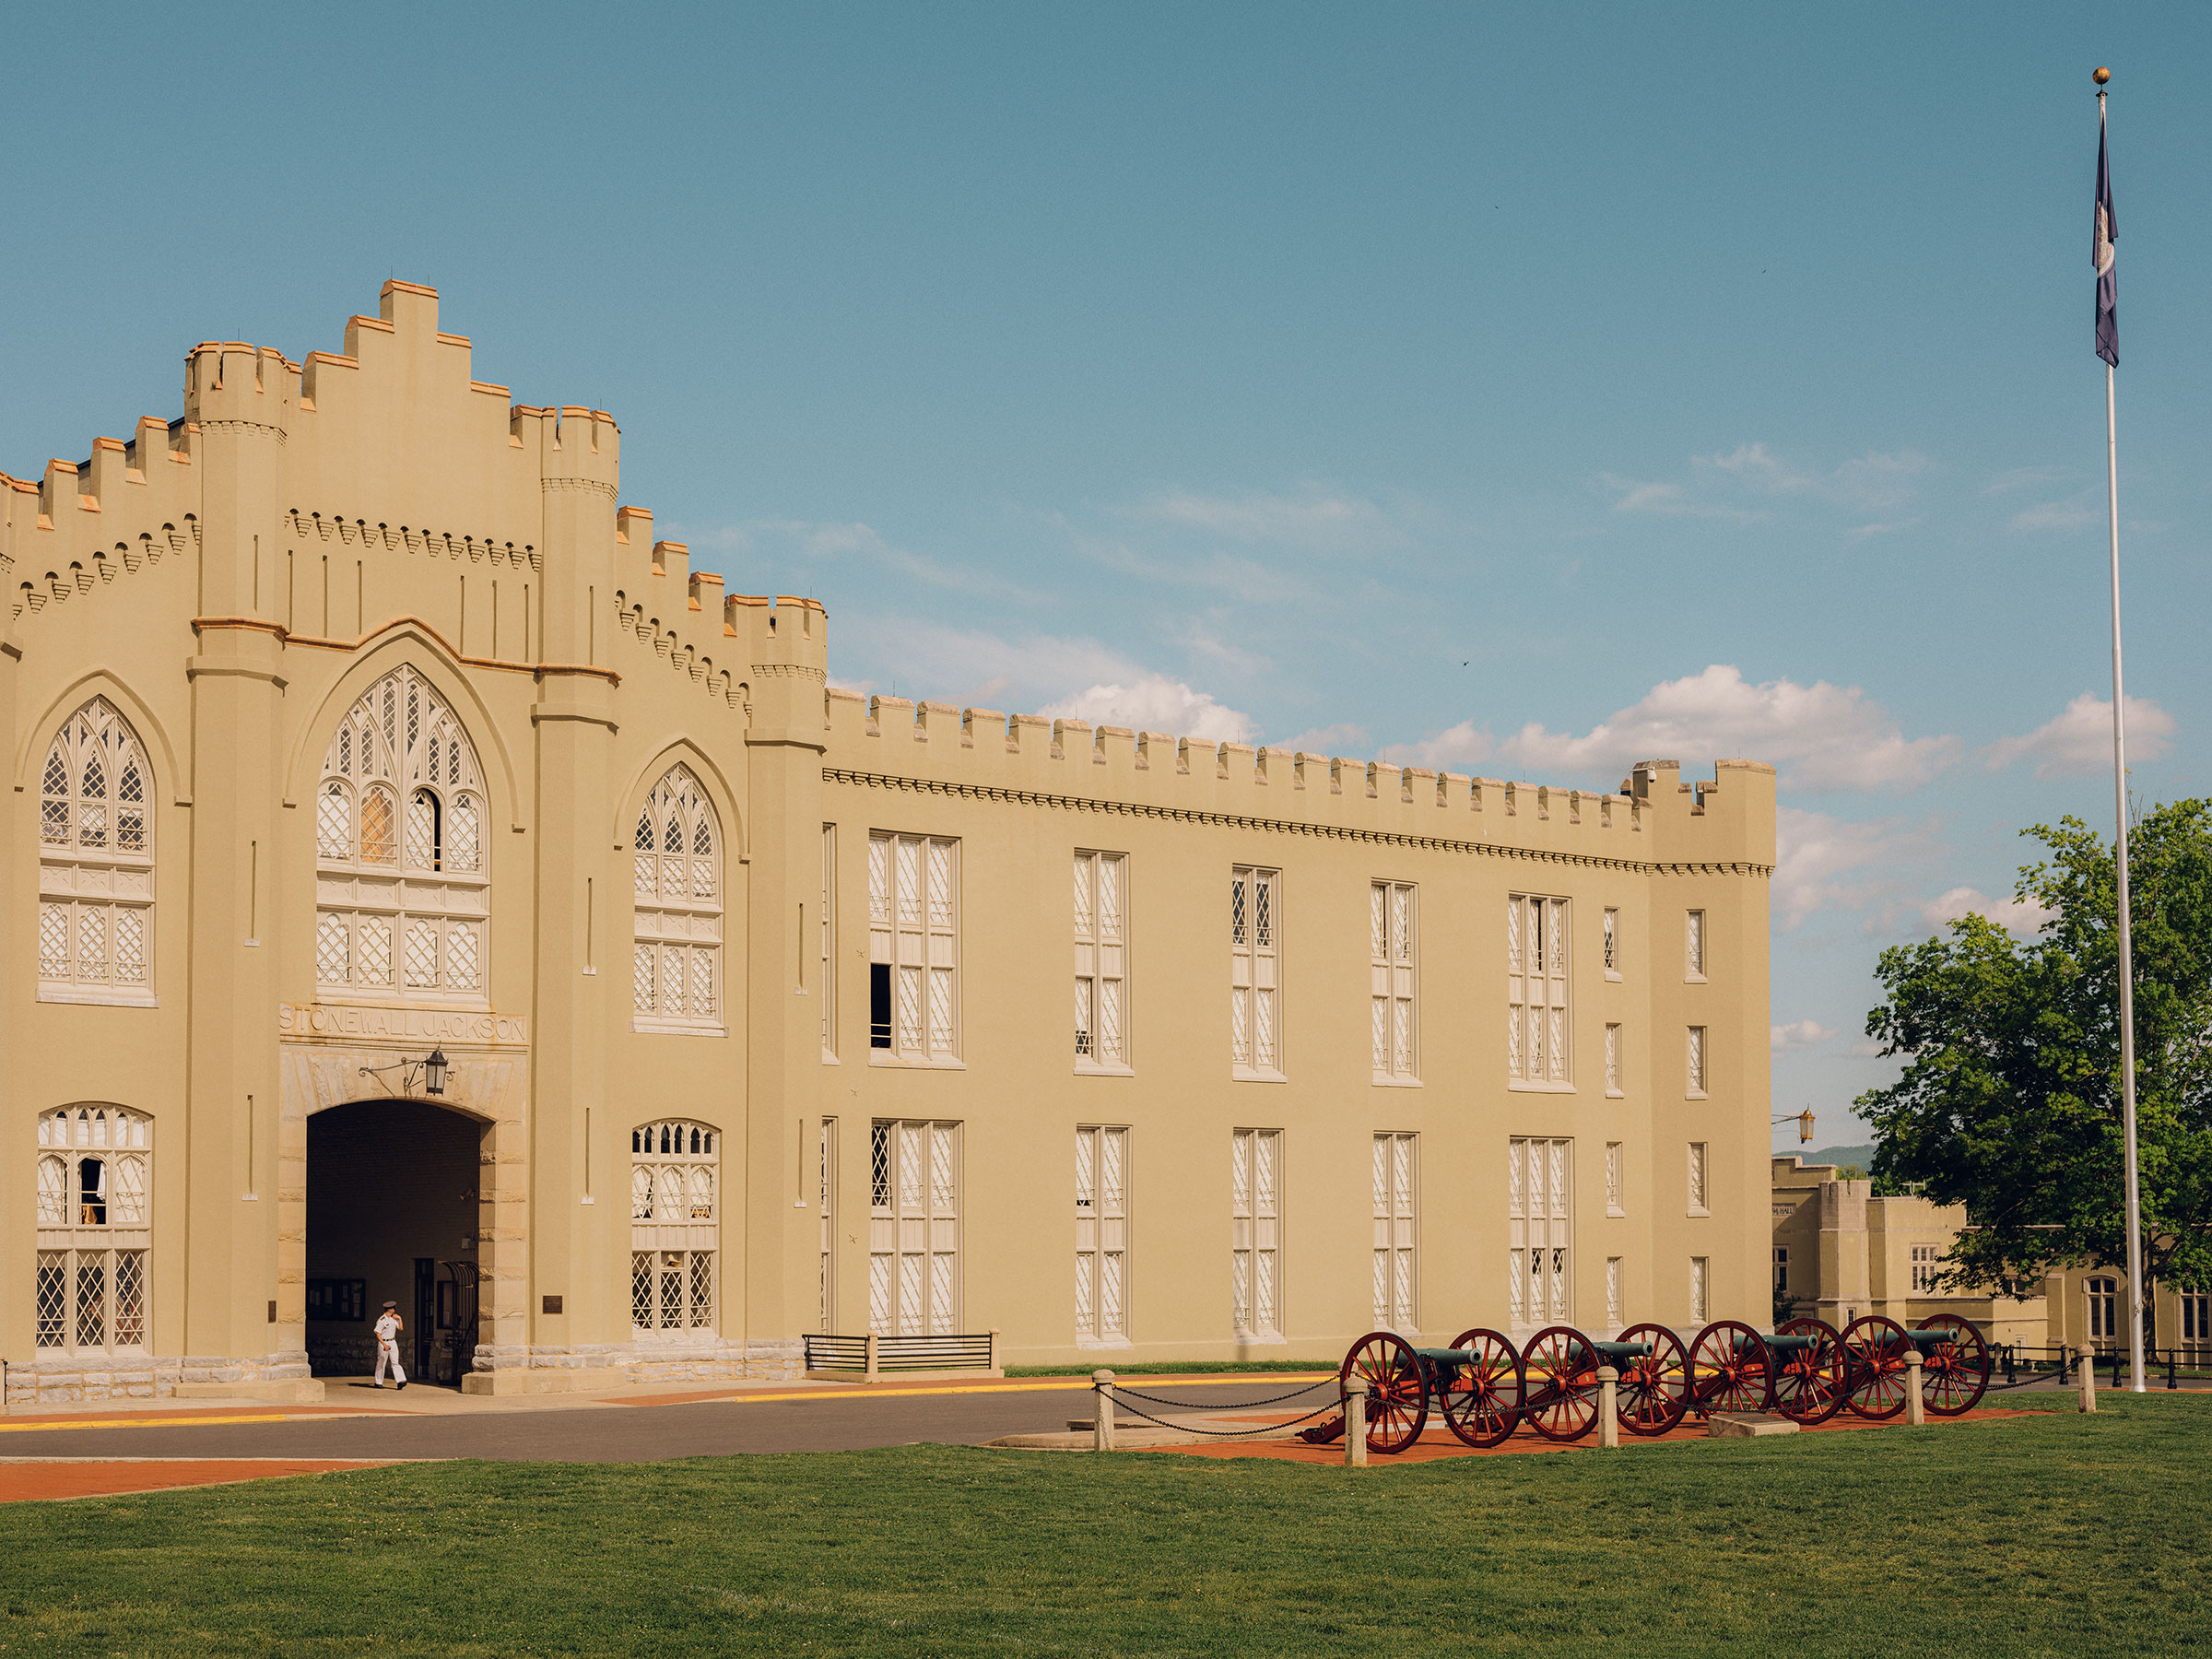 Civil War cannons outside the barracks that                       house Virginia Military Institute's cadets in Lexington, Va. on May 6, 2021.